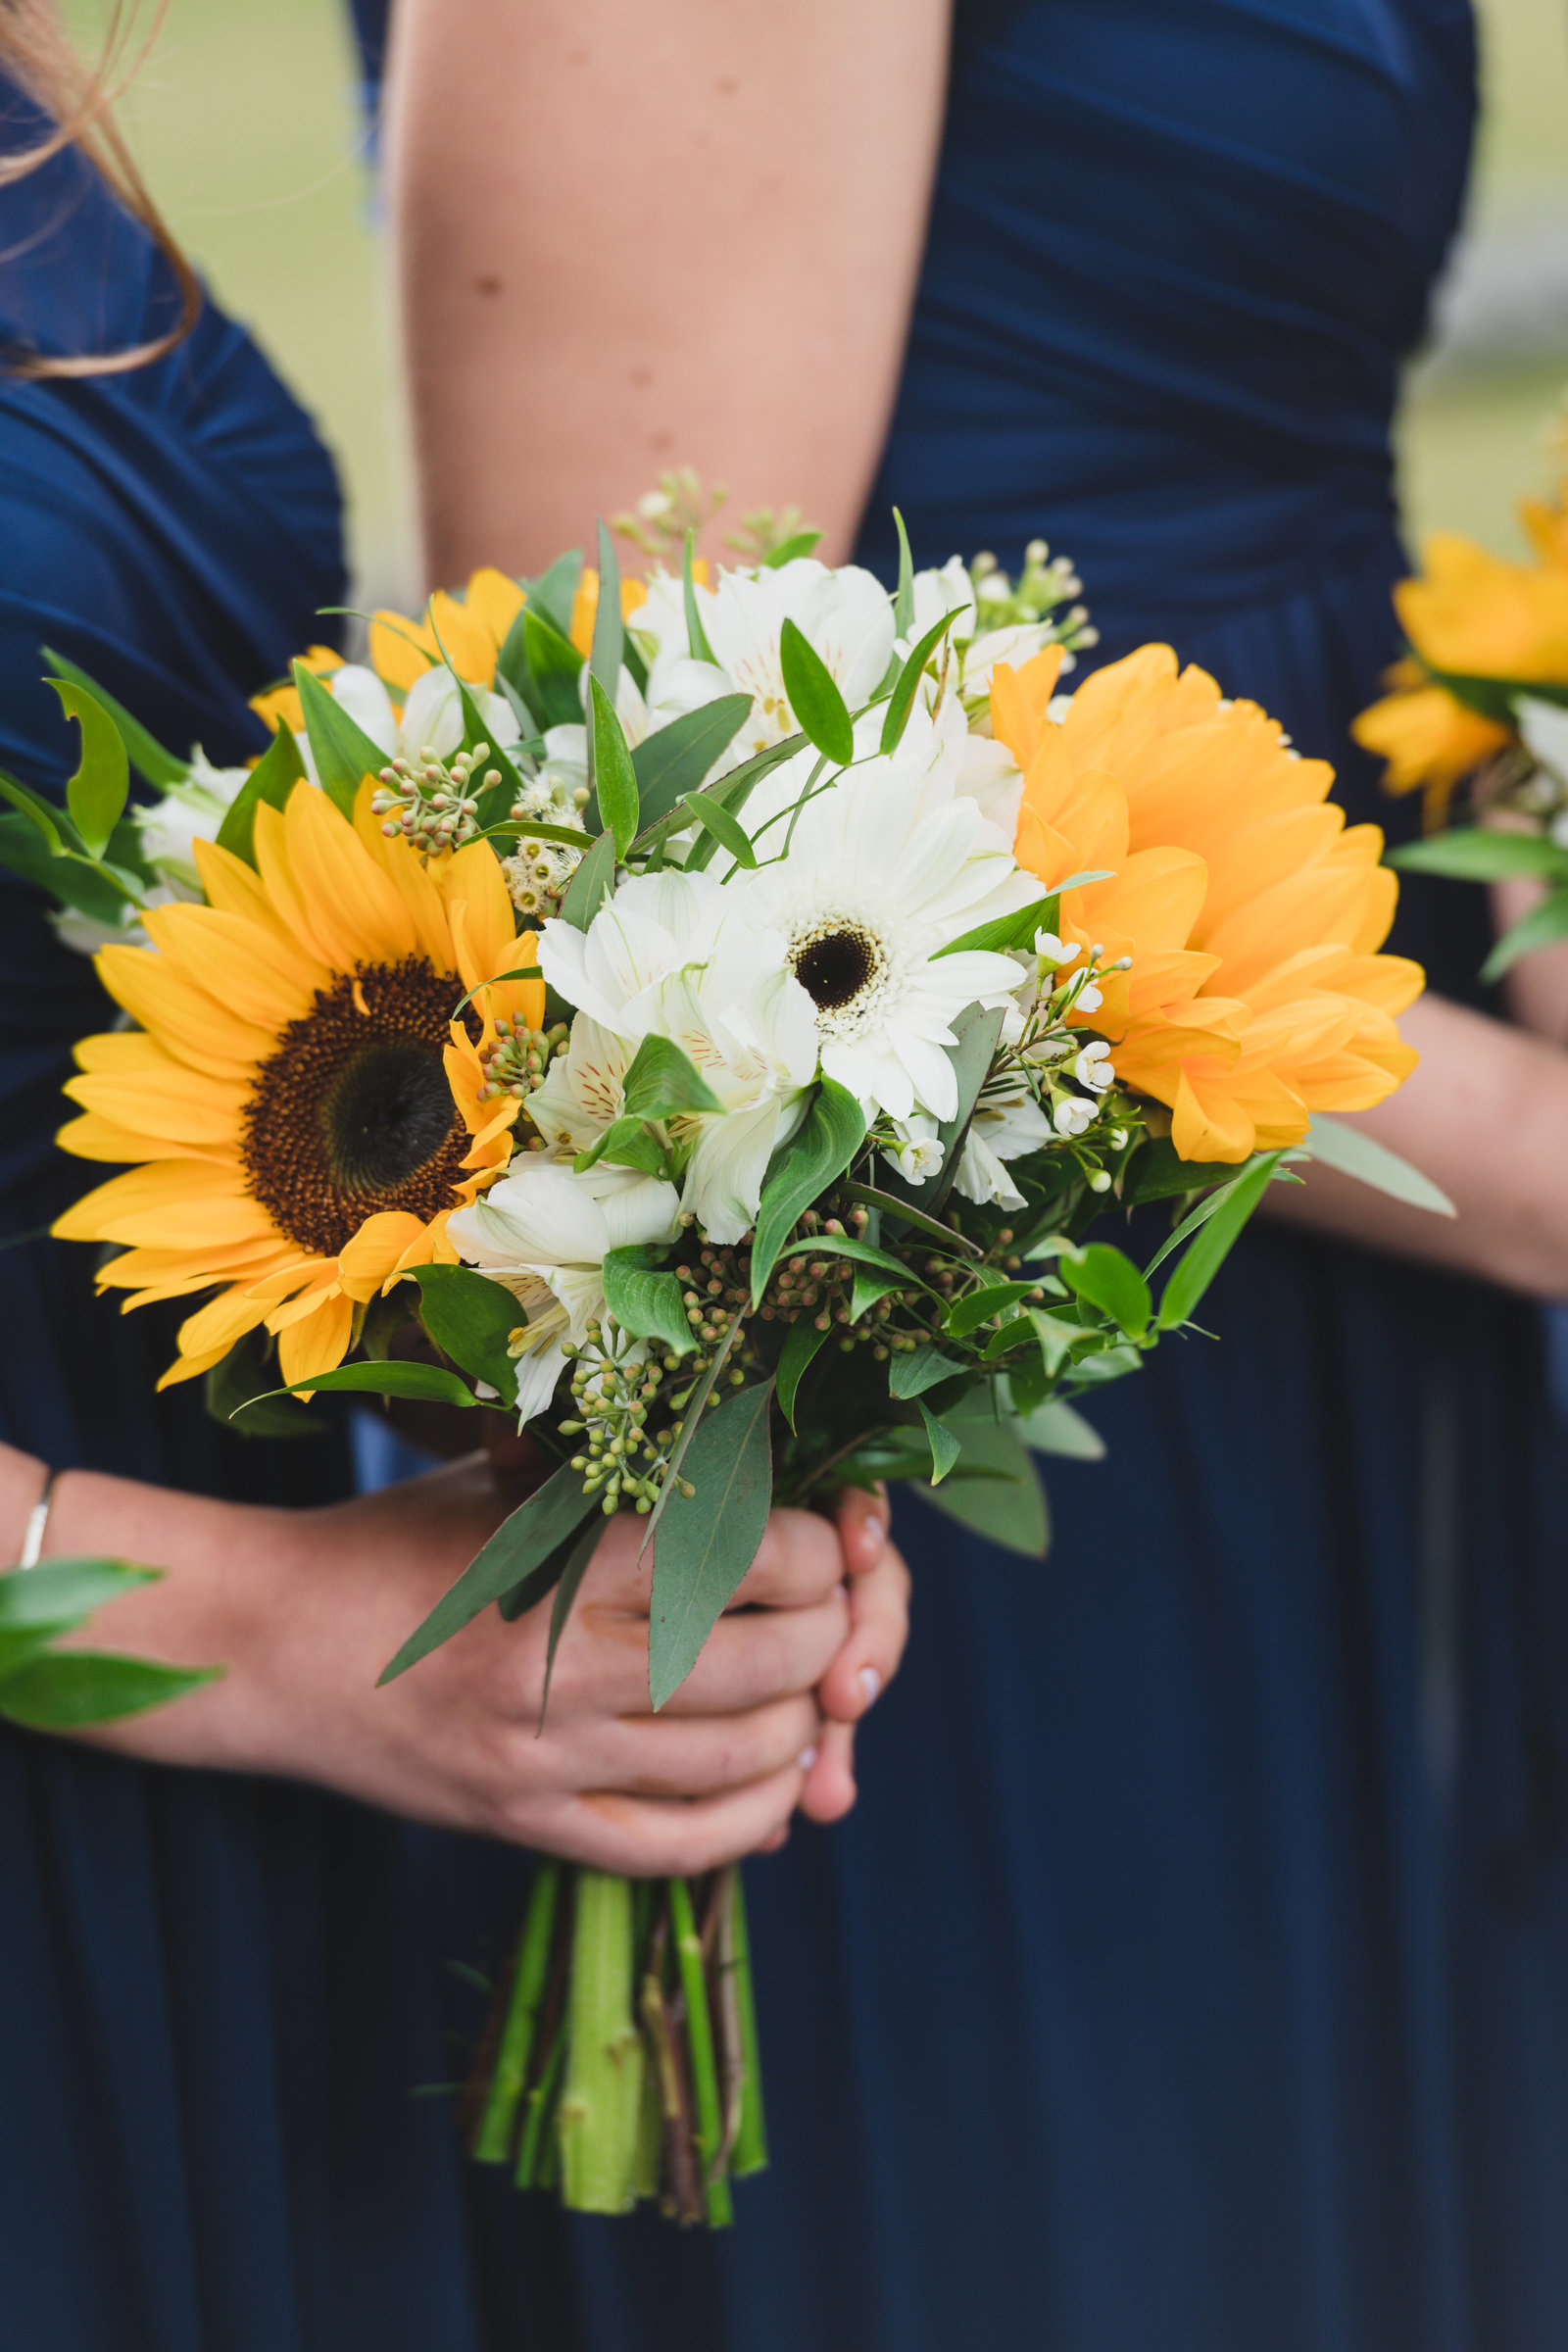 photo of bridesmaids bouquet in hands from wedding at Three Village Inn